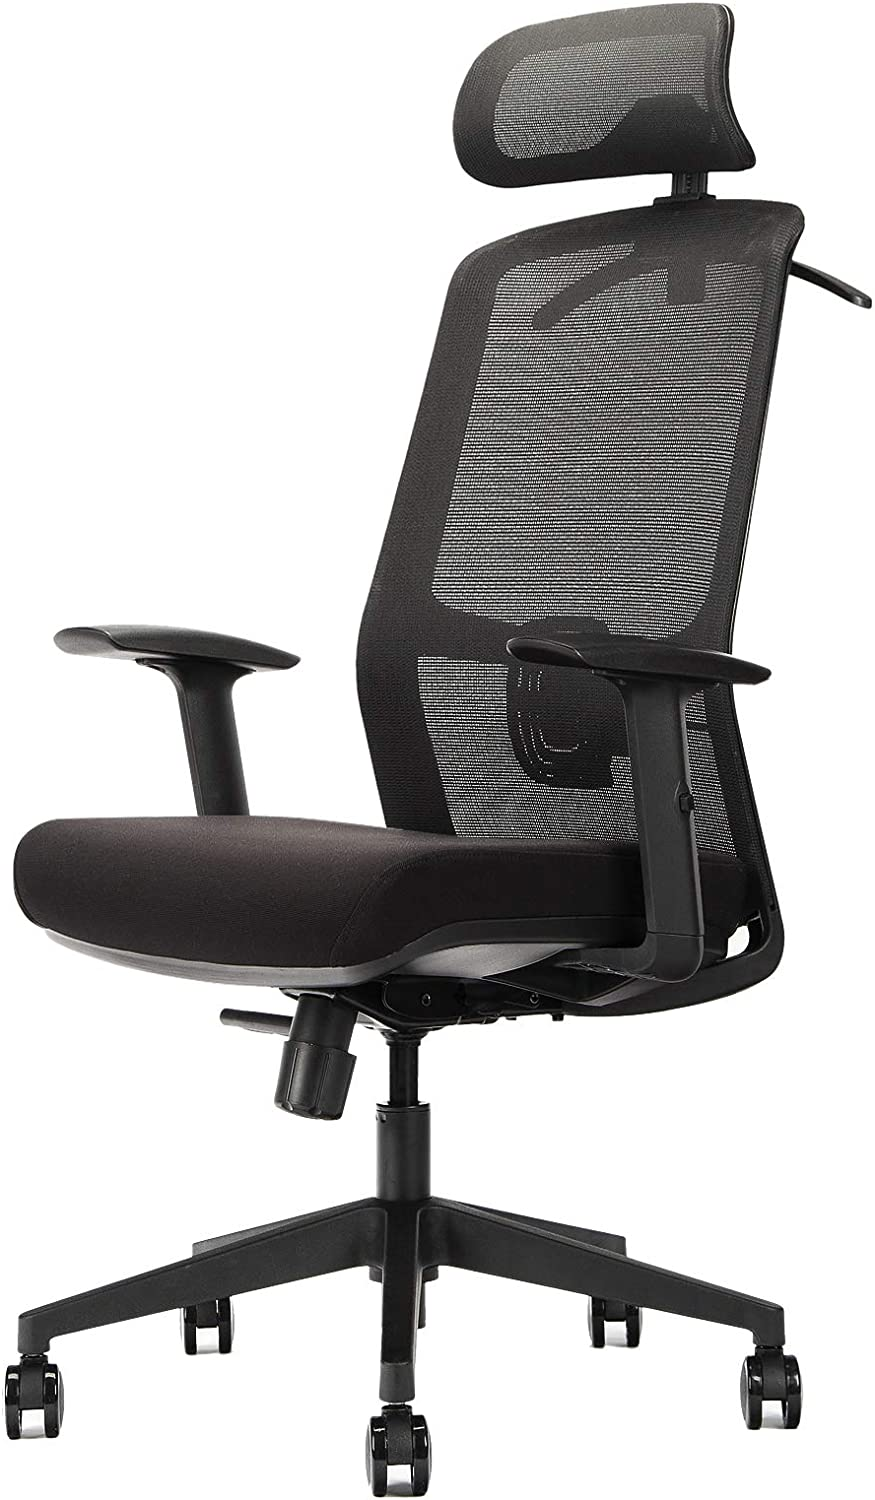 OUTFINE Ergonomic Office Chair Mesh Chair Computer Desk Chair with Adjustable Lumbar Support, Headrest, Armrest, Reclining Angles(Black)